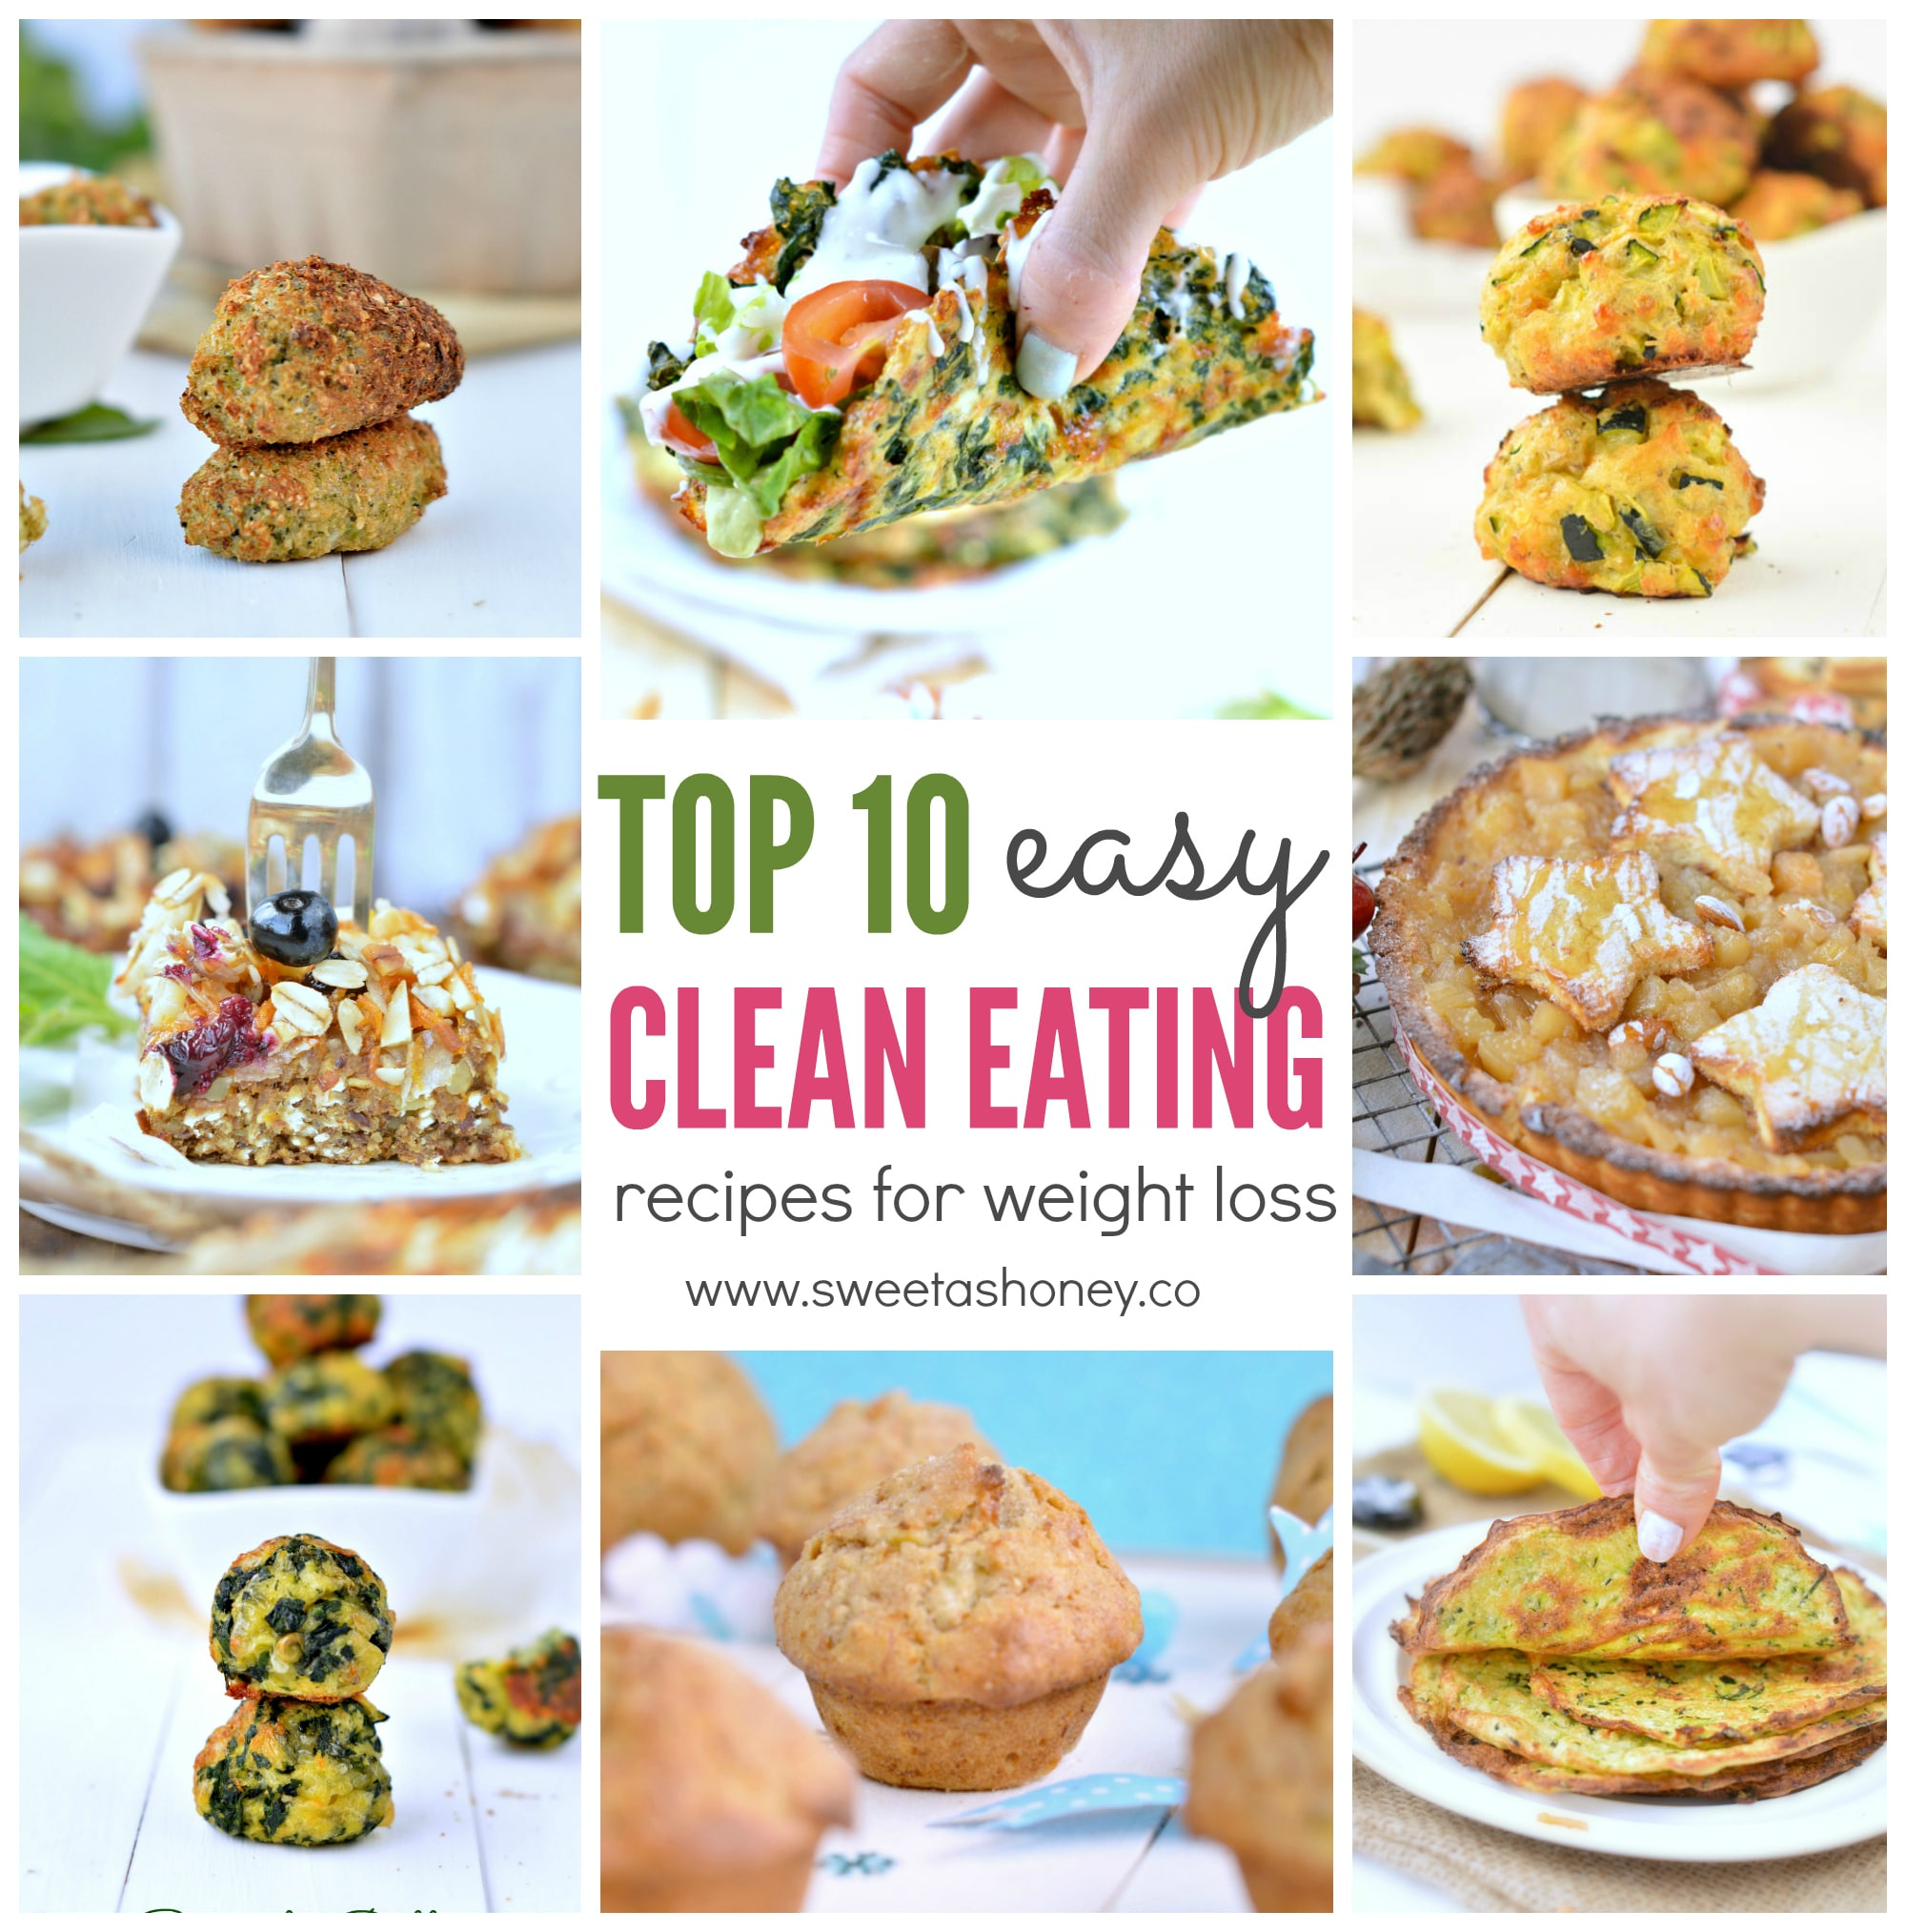 eating clean to lose weight recipes